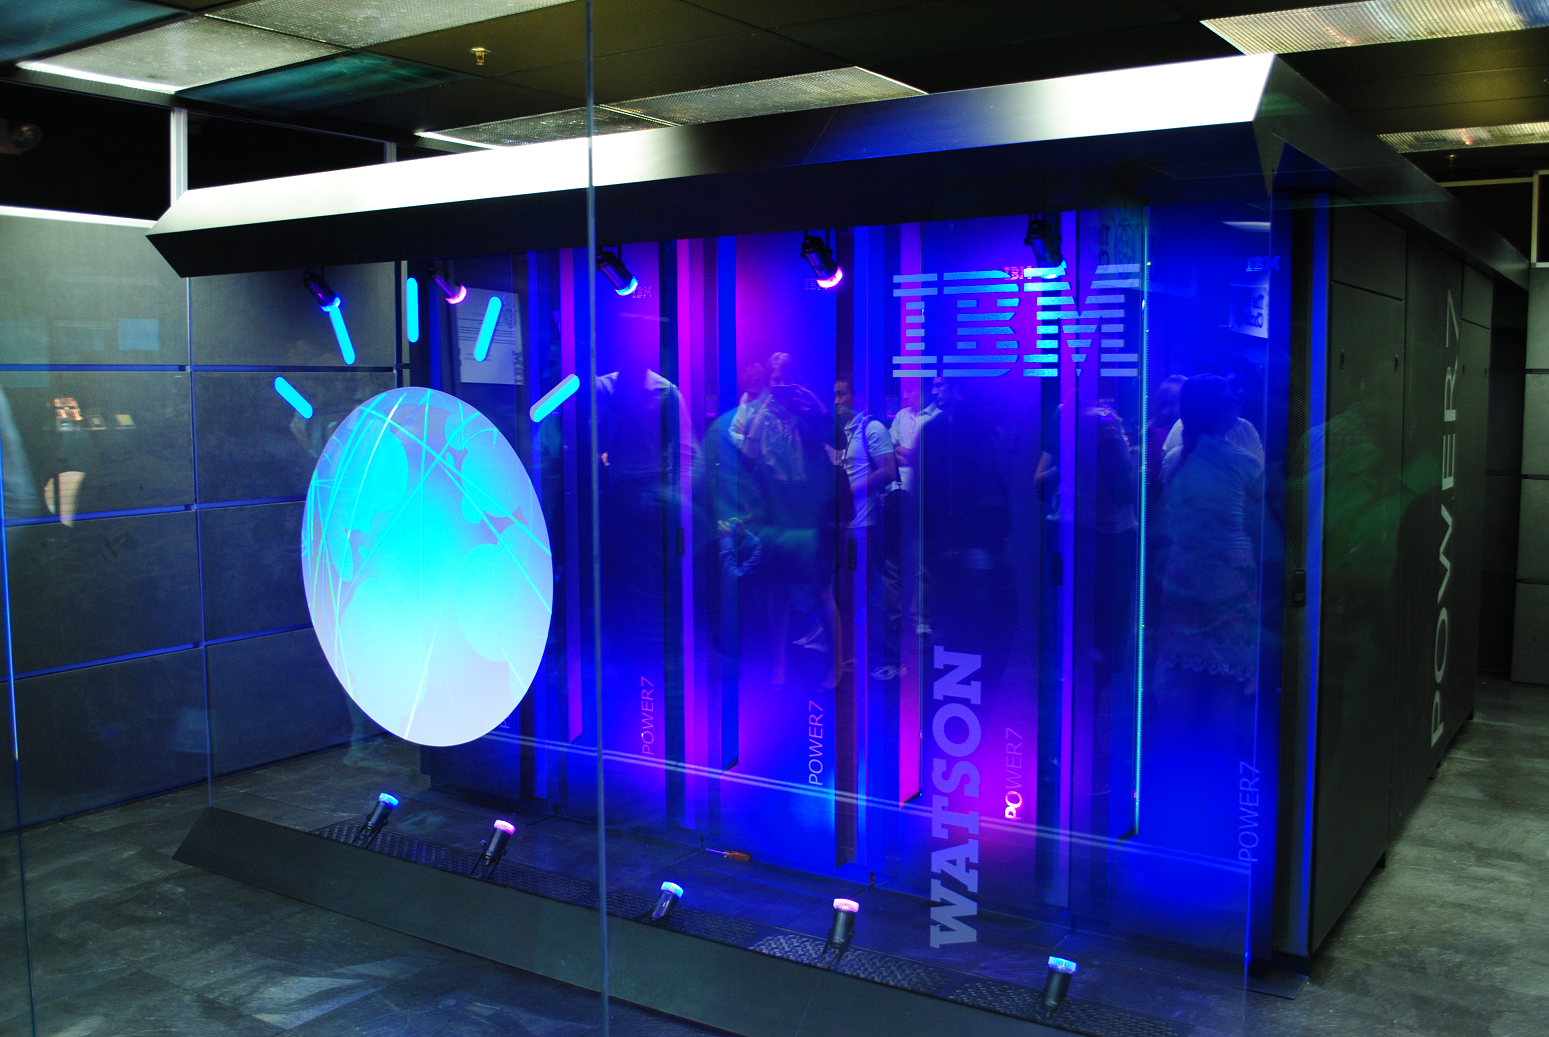 Part 3: IBM Completely Redeems Itself – Building a Tone analysis Service using IBM Bluemix and Watson